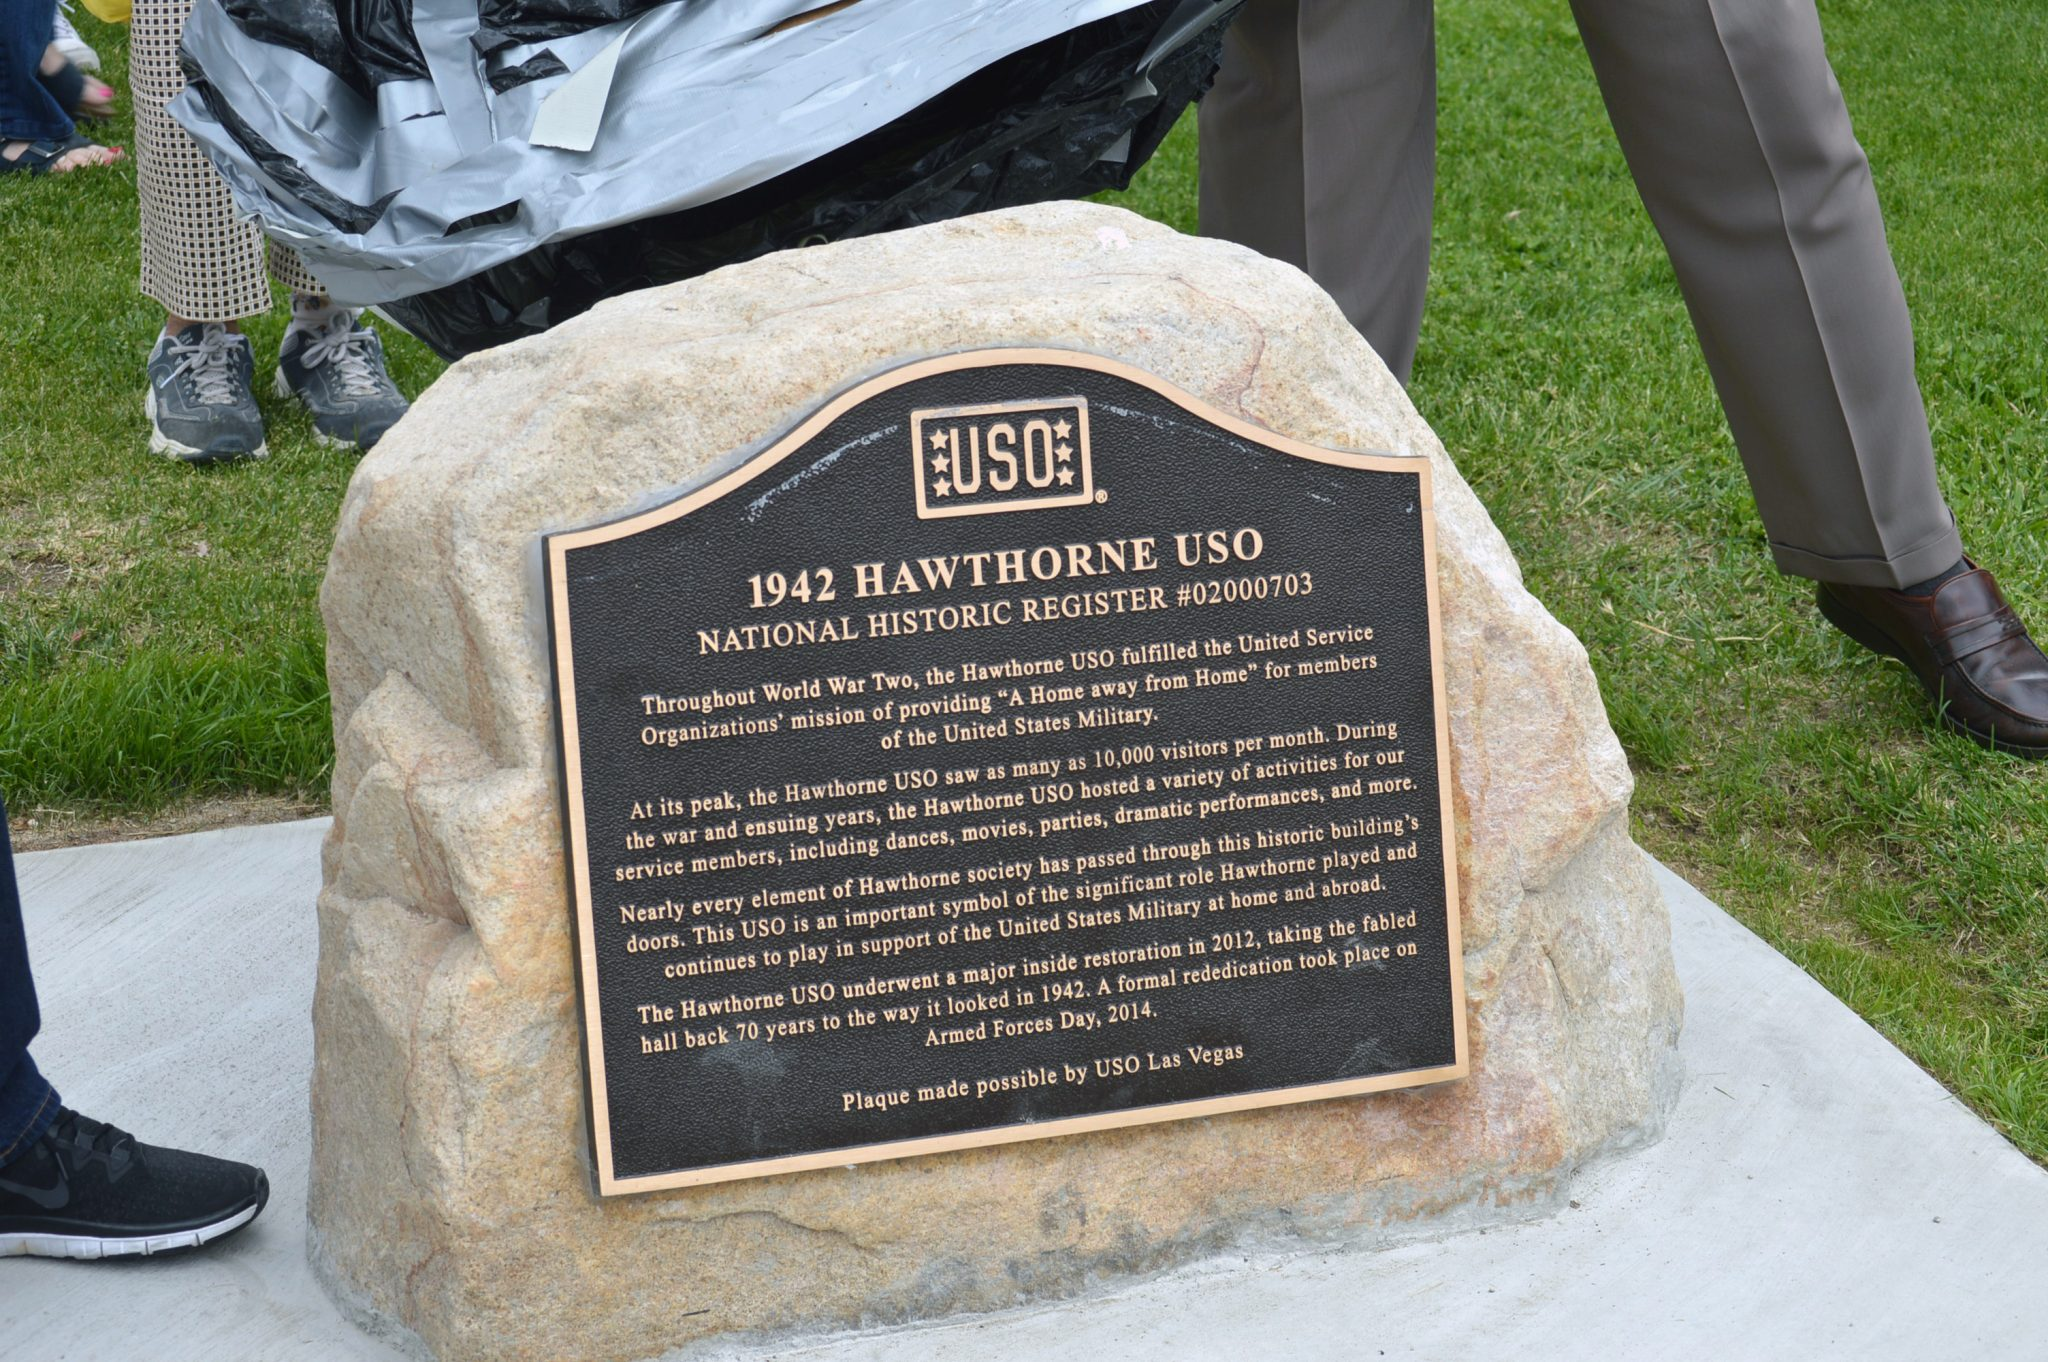 Memorial USO plaque details history of historic building